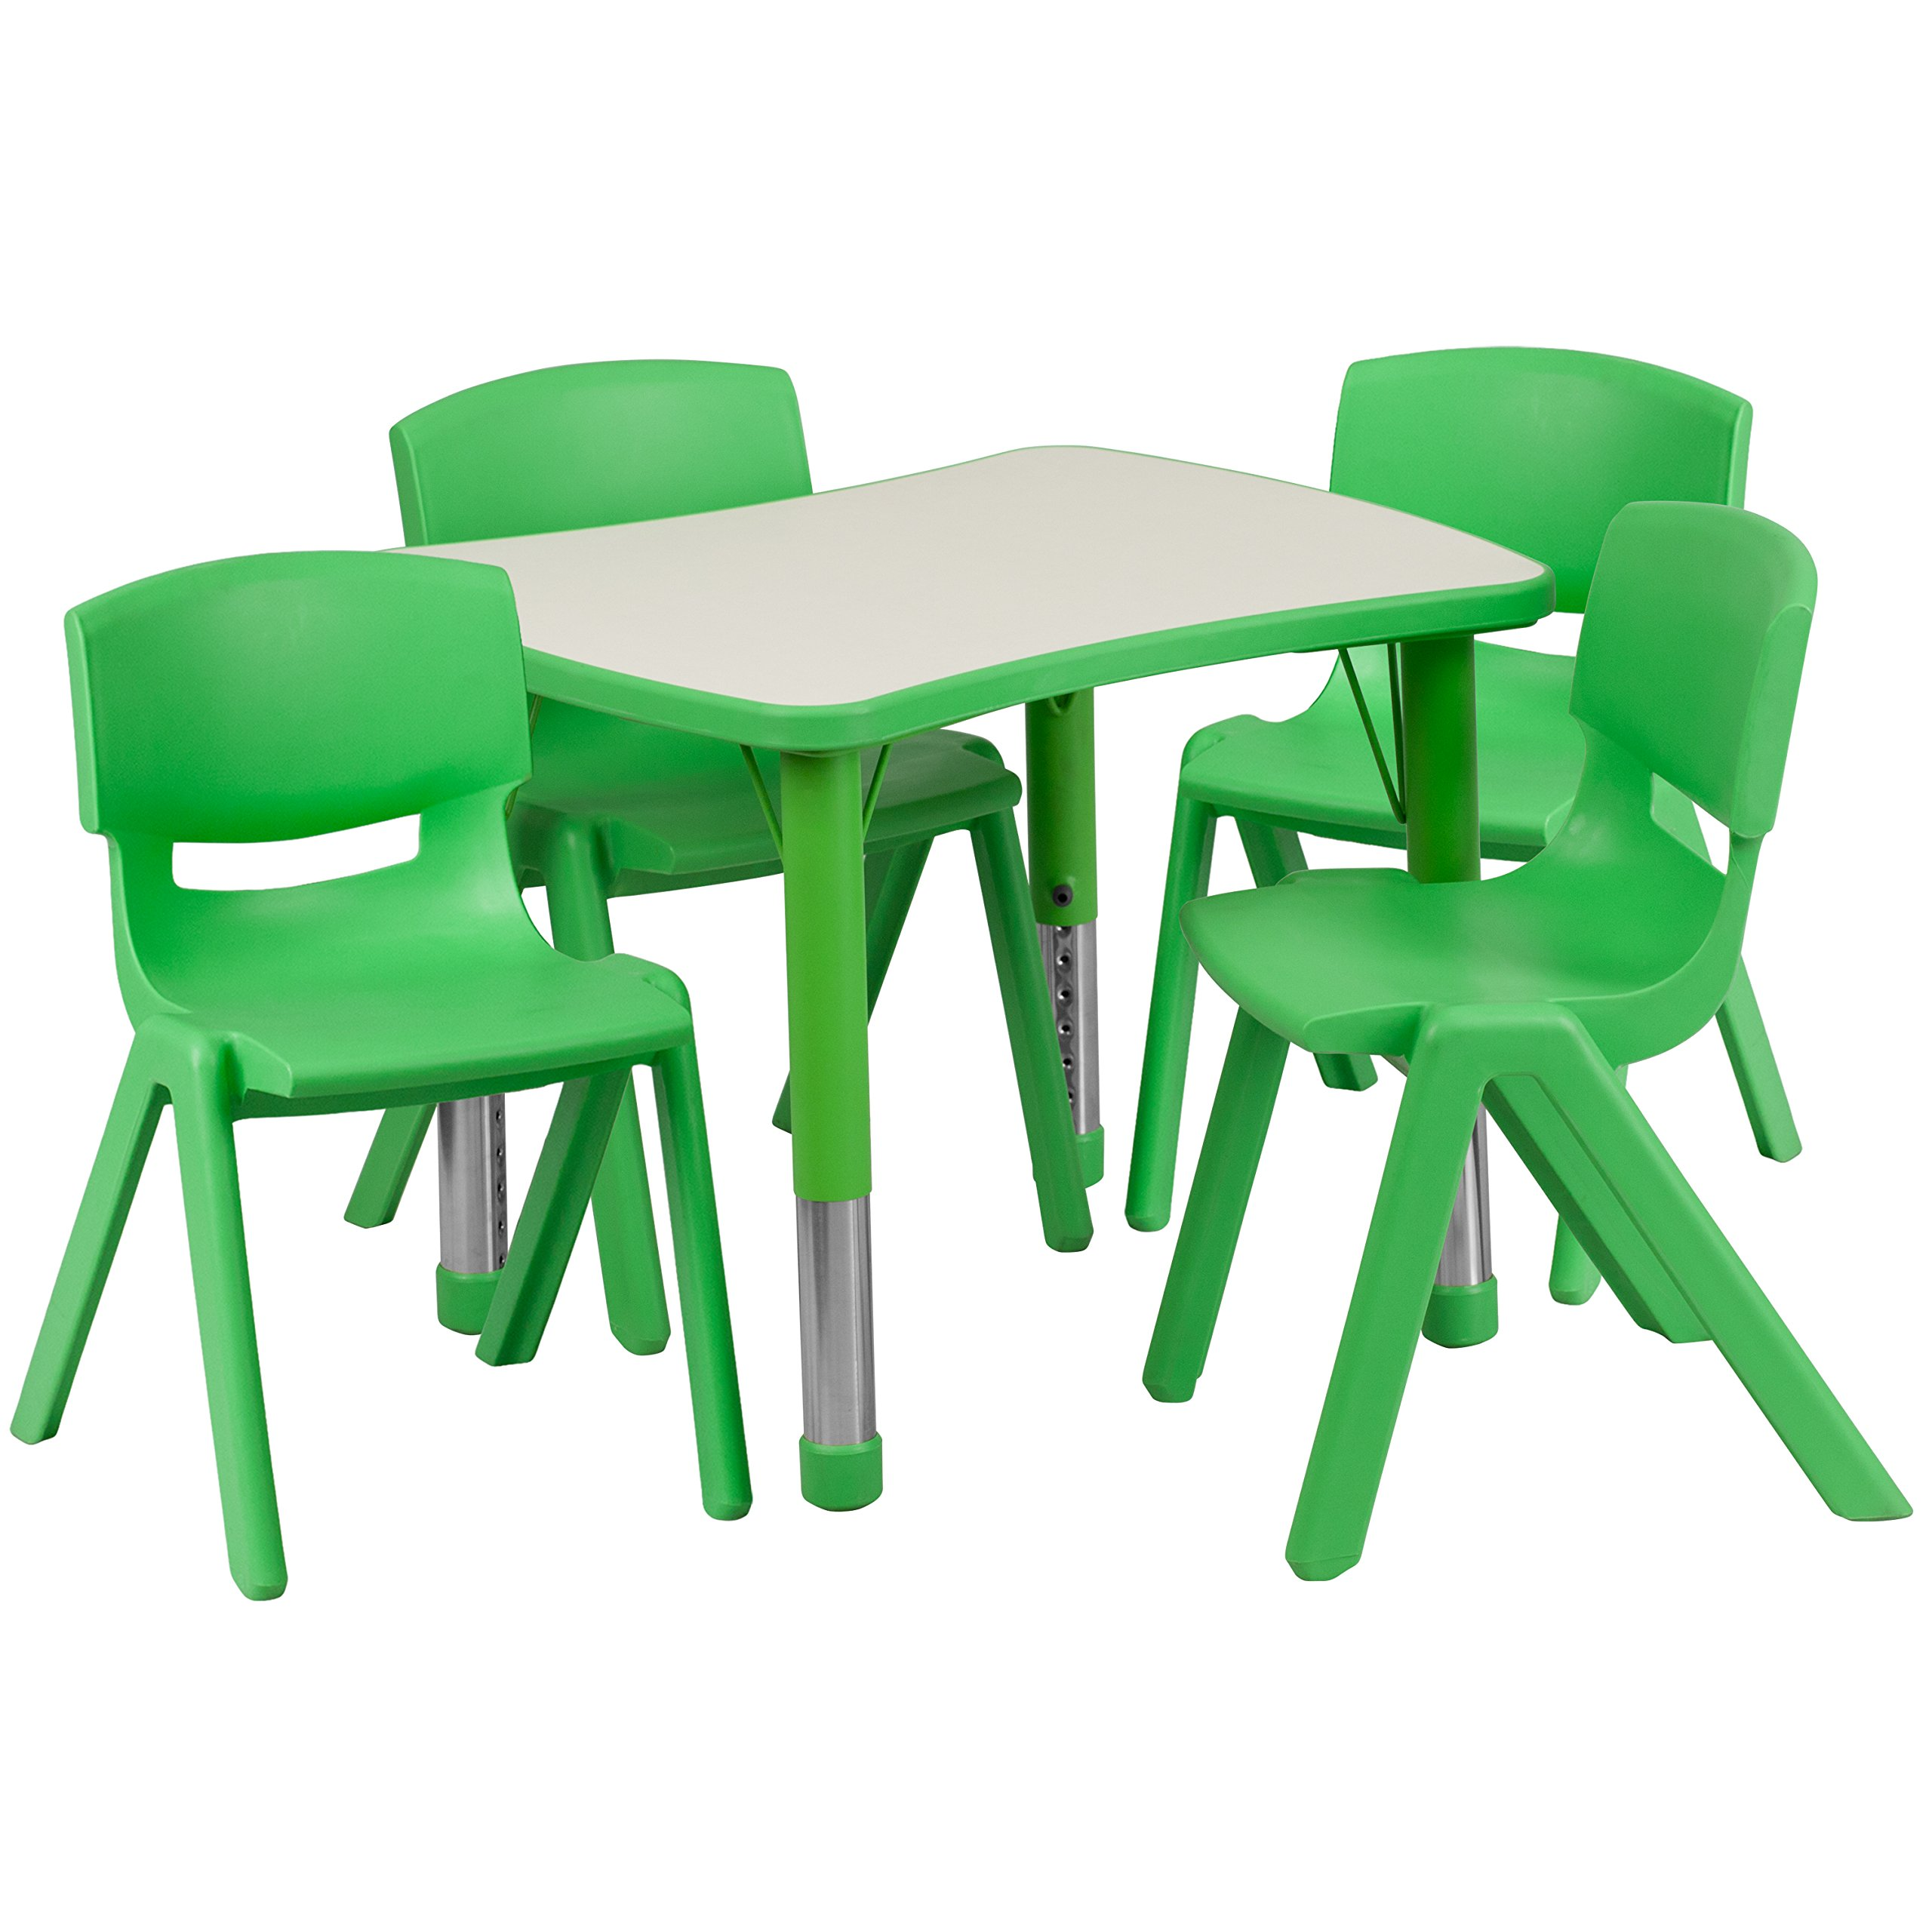 Flash Furniture 21.875''W x 26.625''L Rectangular Green Plastic Height Adjustable Activity Table Set with 4 Chairs by Flash Furniture